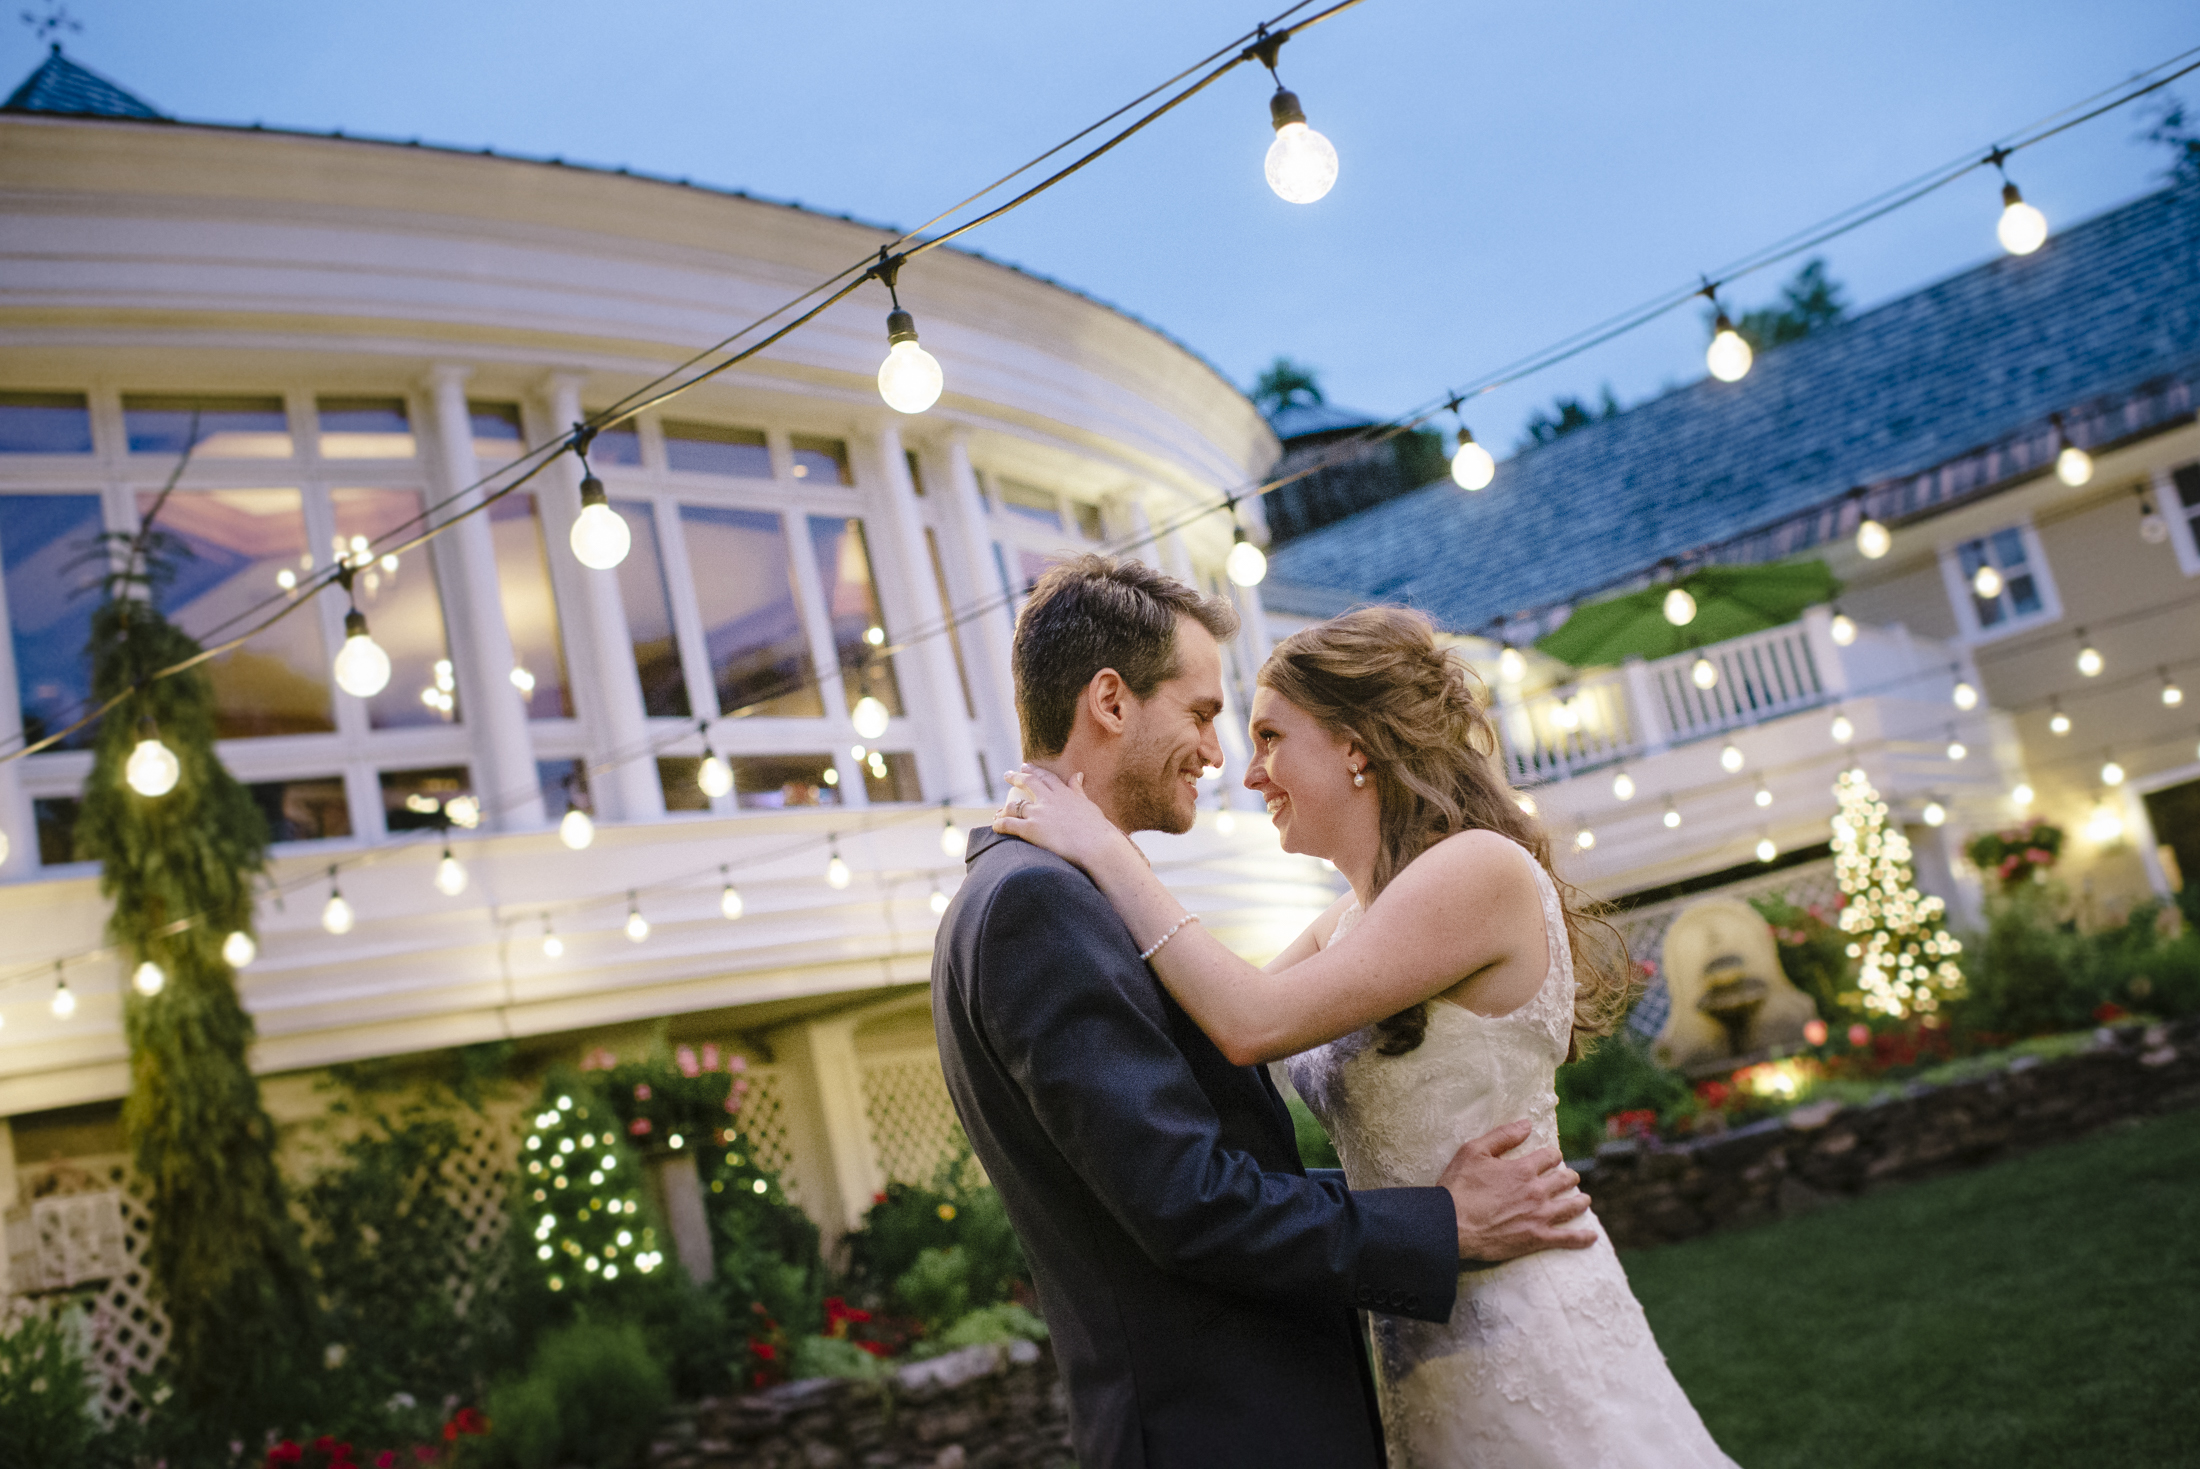 NH Wedding Photographer: Bedford Village Inn at night lights couple